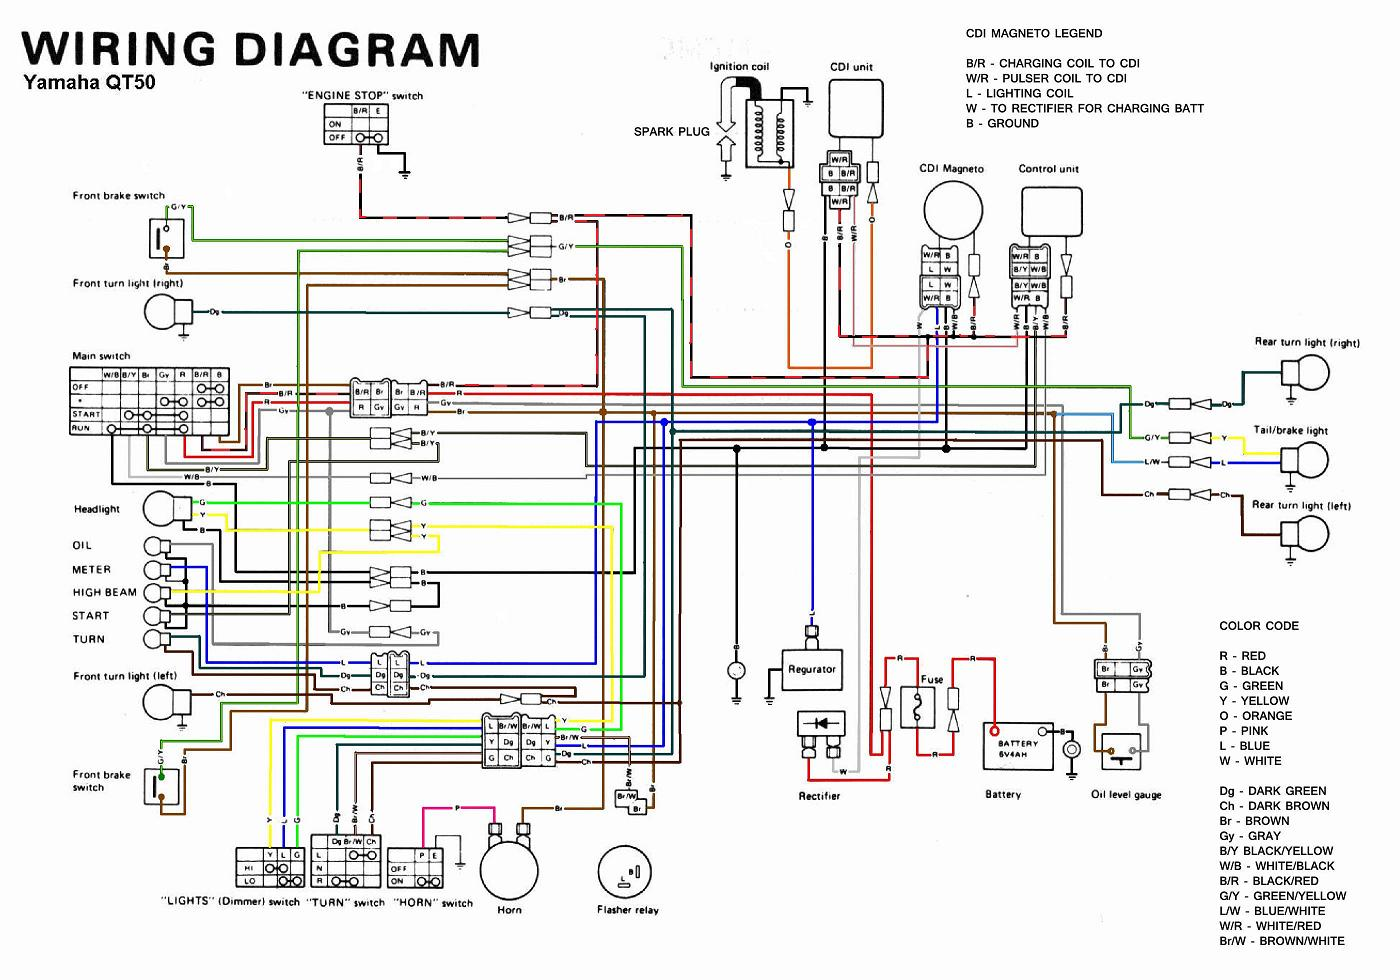 Yamaha QT50 Wiring Diagram yamaha qt50 wiring diagram yamaha qt50 luvin and other nopeds suzuki fa50 wiring diagram at gsmportal.co